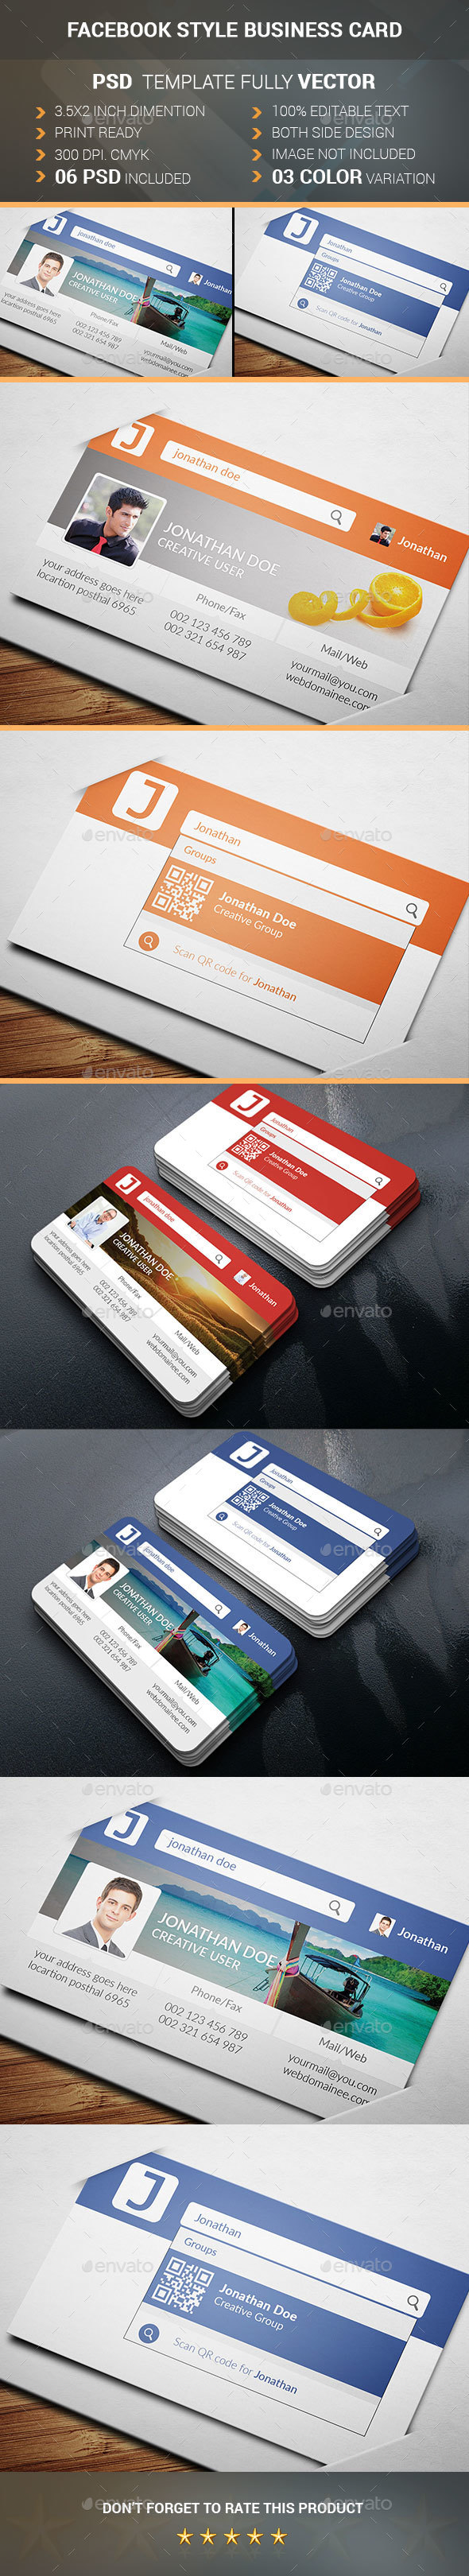 Facebook Style Business Card - Business Cards Print Templates